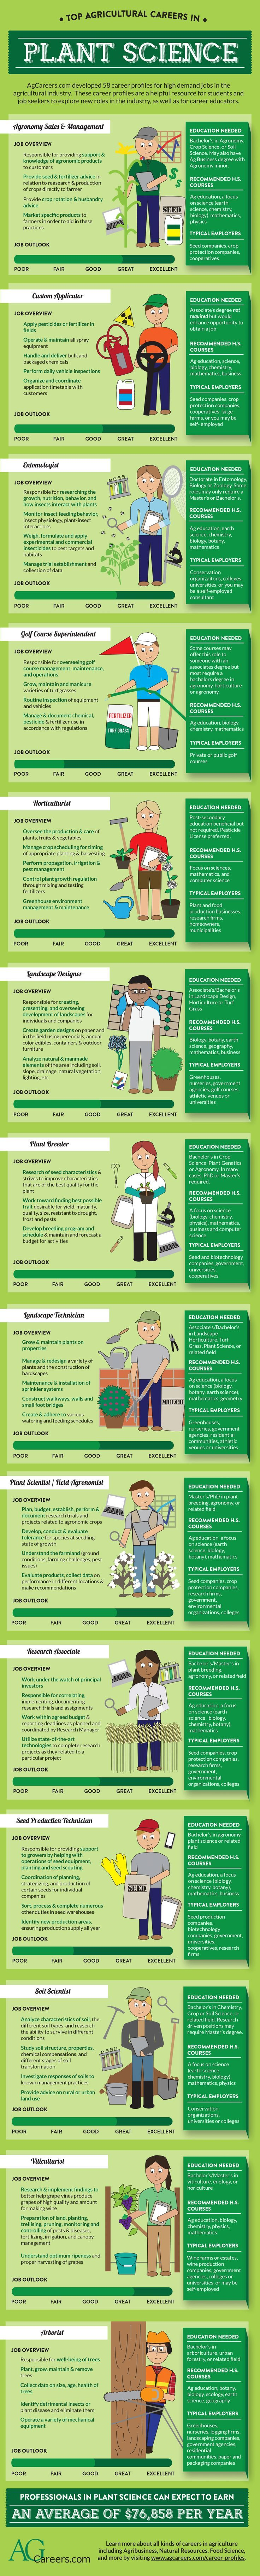 Top agricultural career in #PlantScience. Learn more on http://AgCareers.com: http://www.agcareers.com/career-profiles/